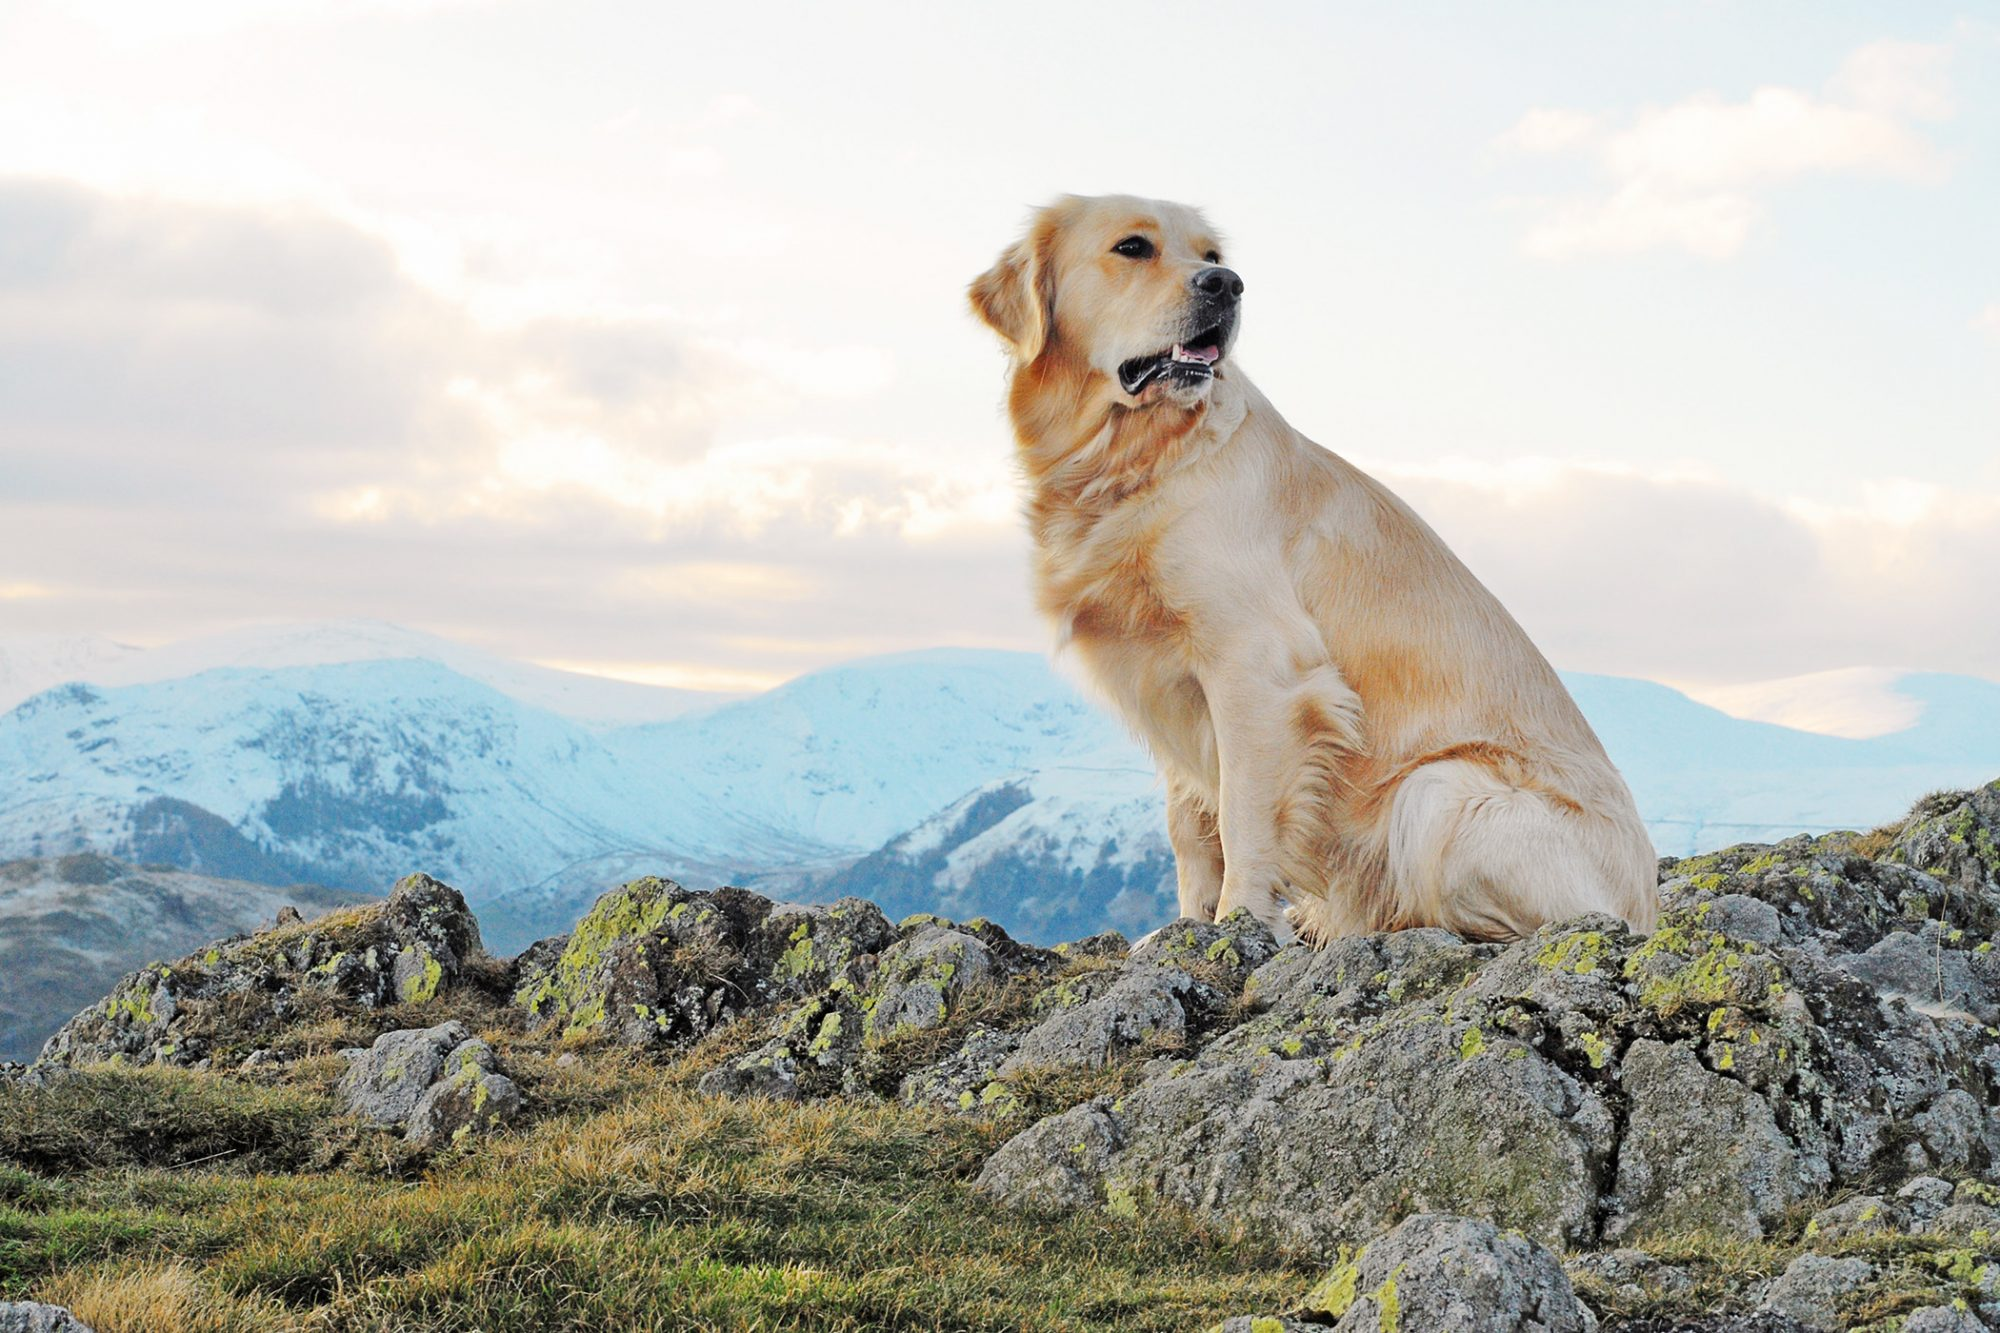 Golden retriever sits on rocky hilltop